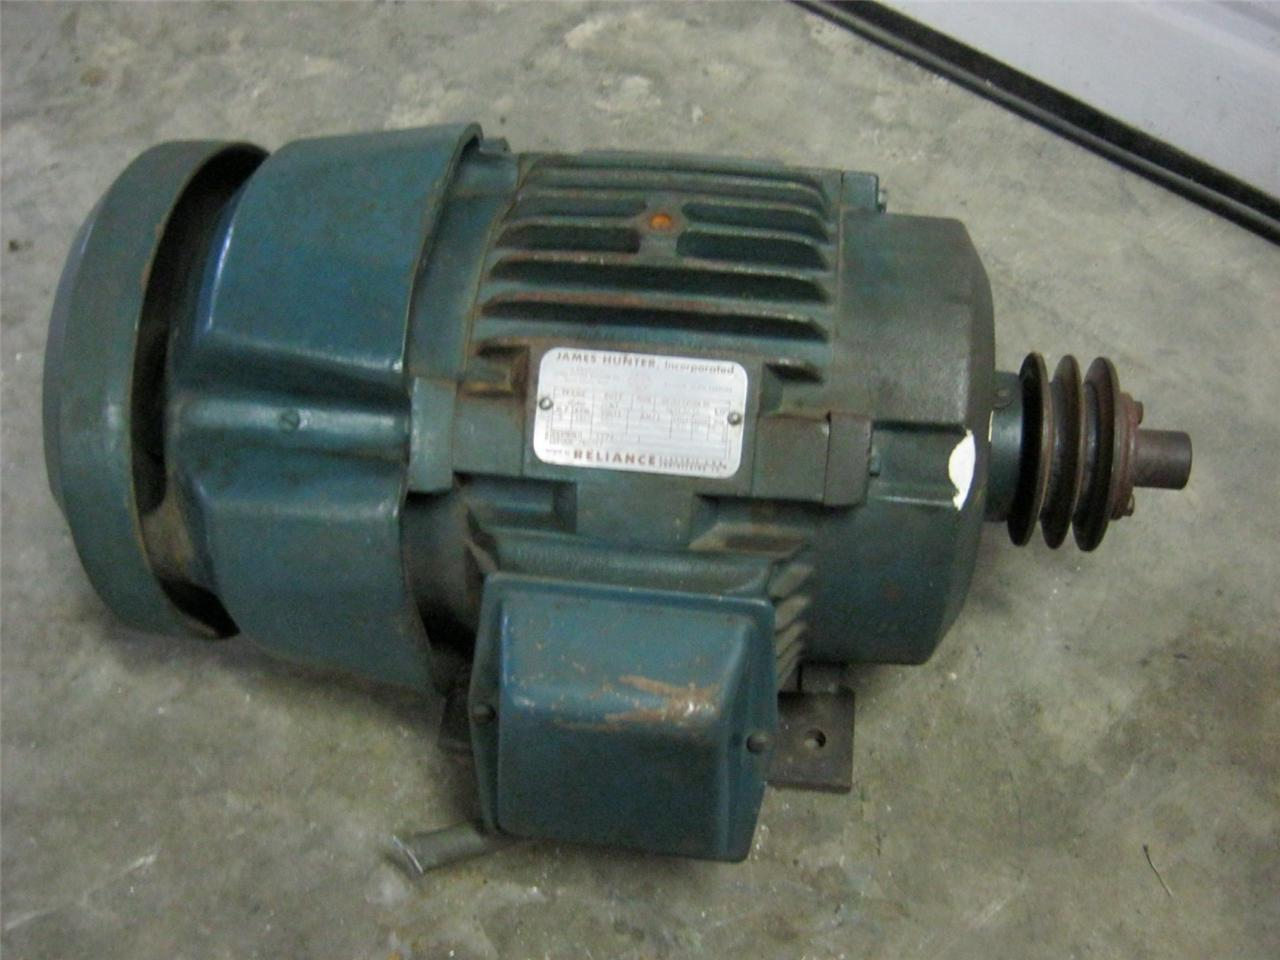 Reliance 5 hp 1160 rpm 550 volts 6 amps motor daves for 5 hp motor amps